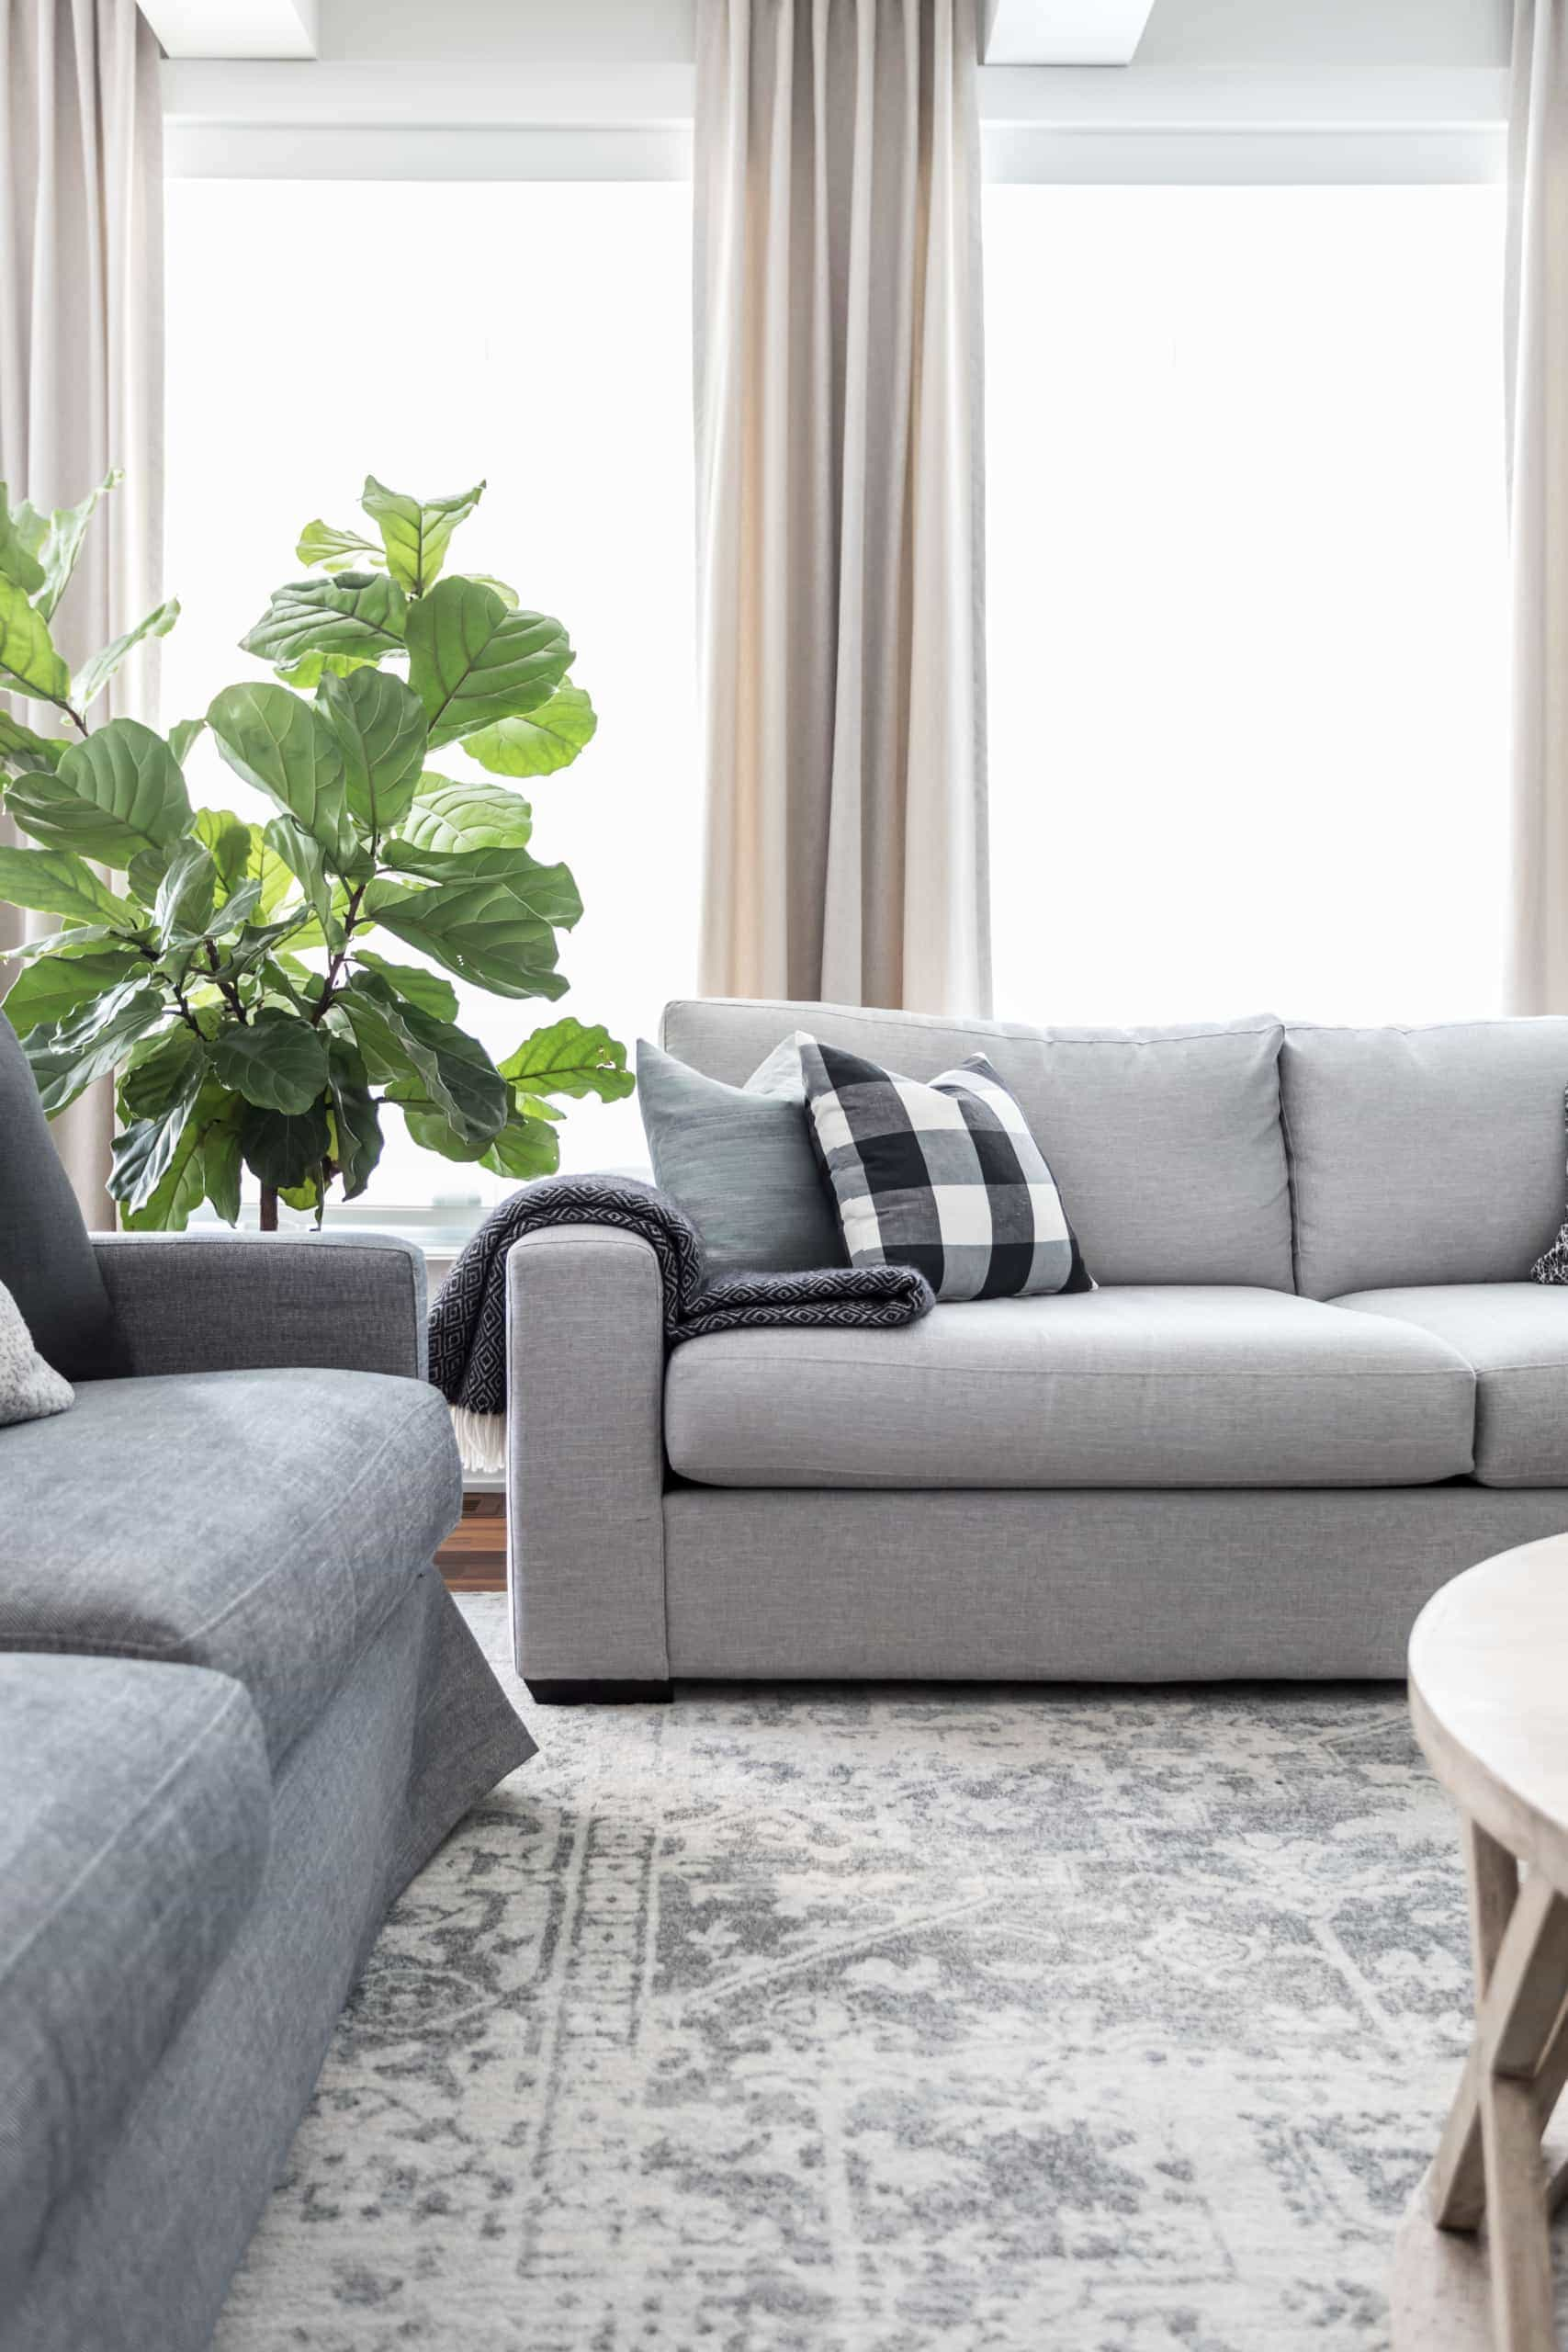 Couch near bright windows inside living room